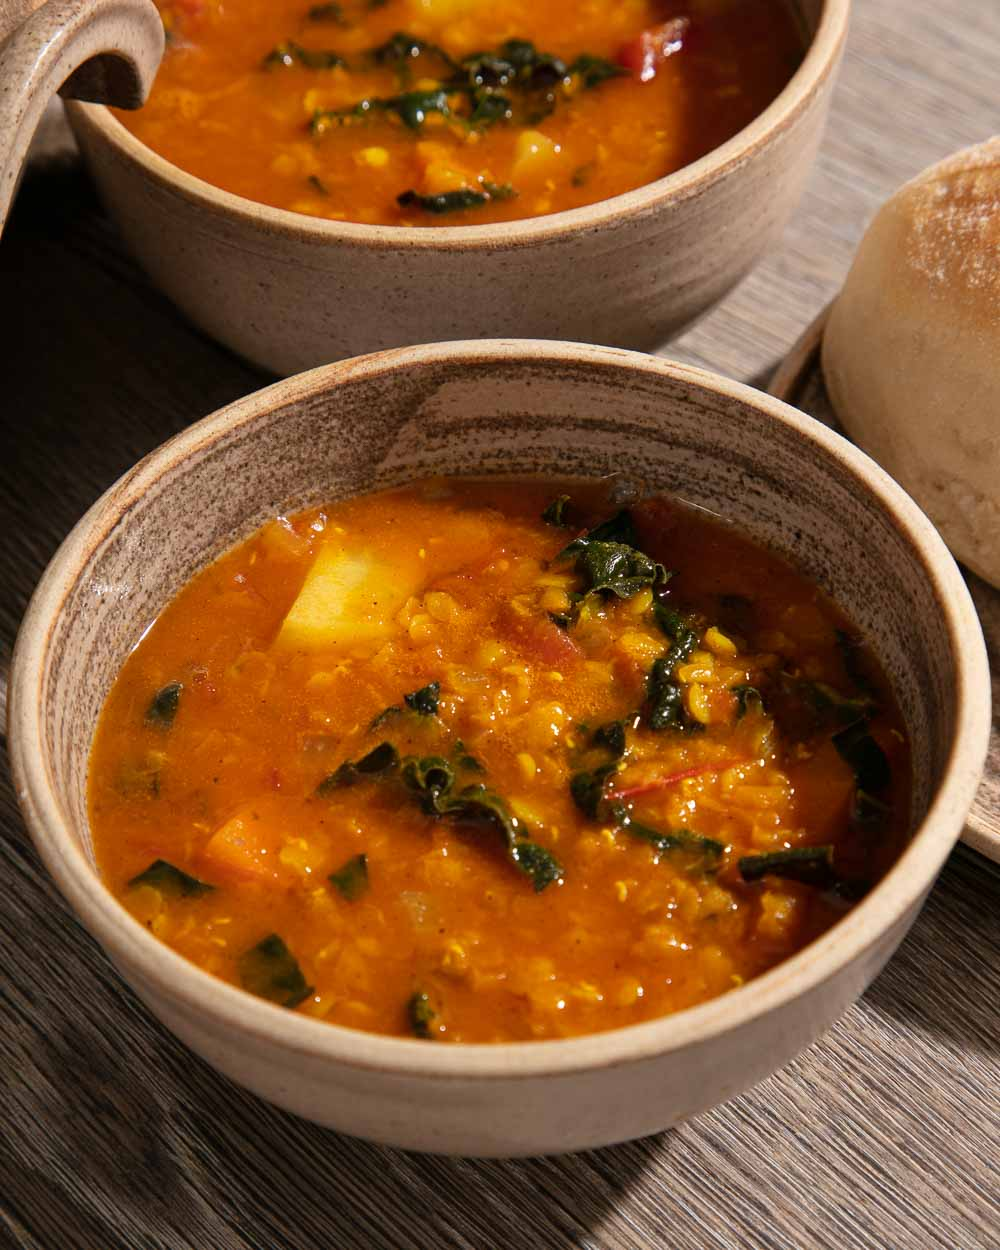 A bowl of lentil and winter vegetable soup.